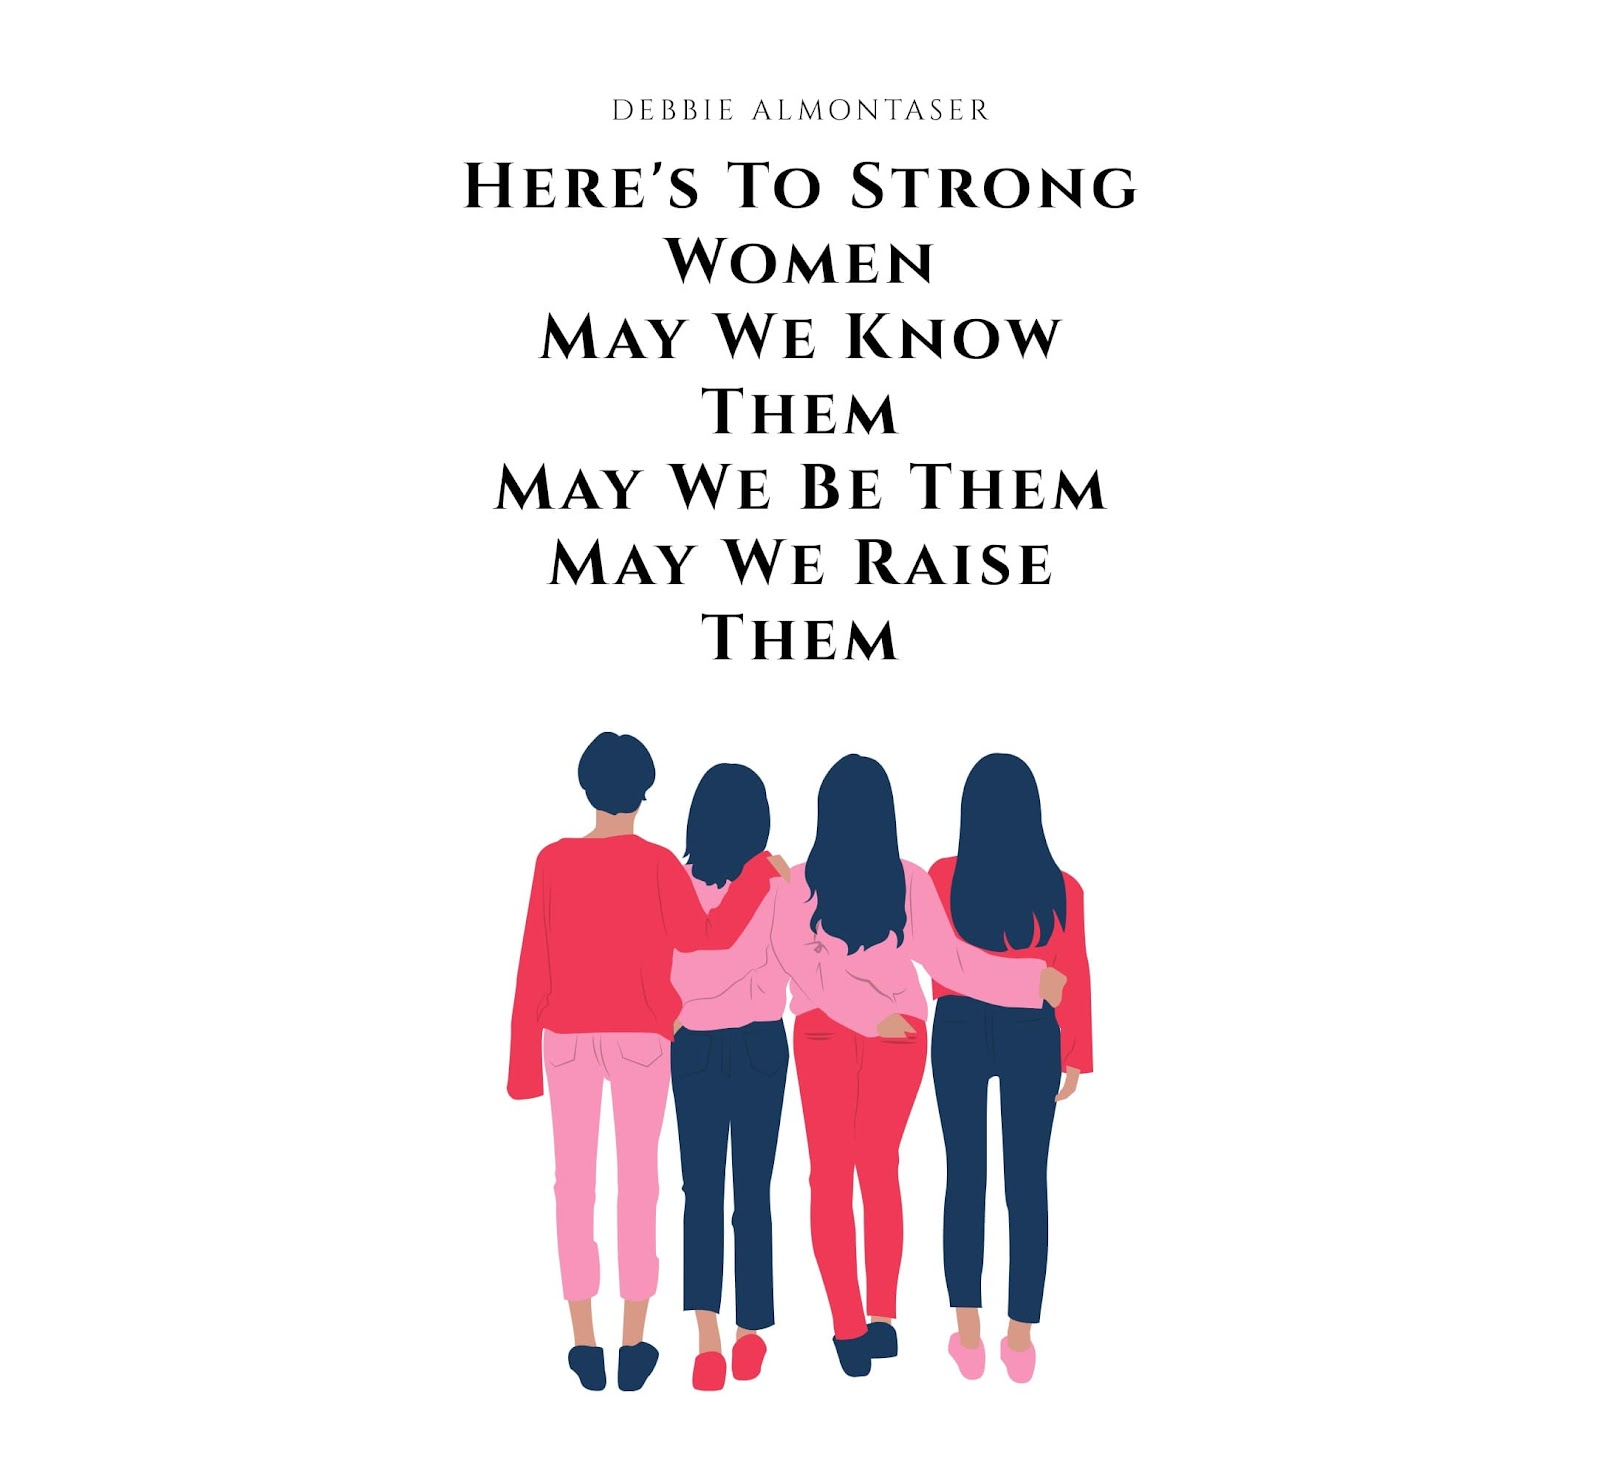 Strong women build each other up. We have examples like Ilhan Omar and Rashida Tlaib who are standing up equal rights of miniorities in America. Trump's racist twitter rants confirm the foundations of Leading While Muslim.